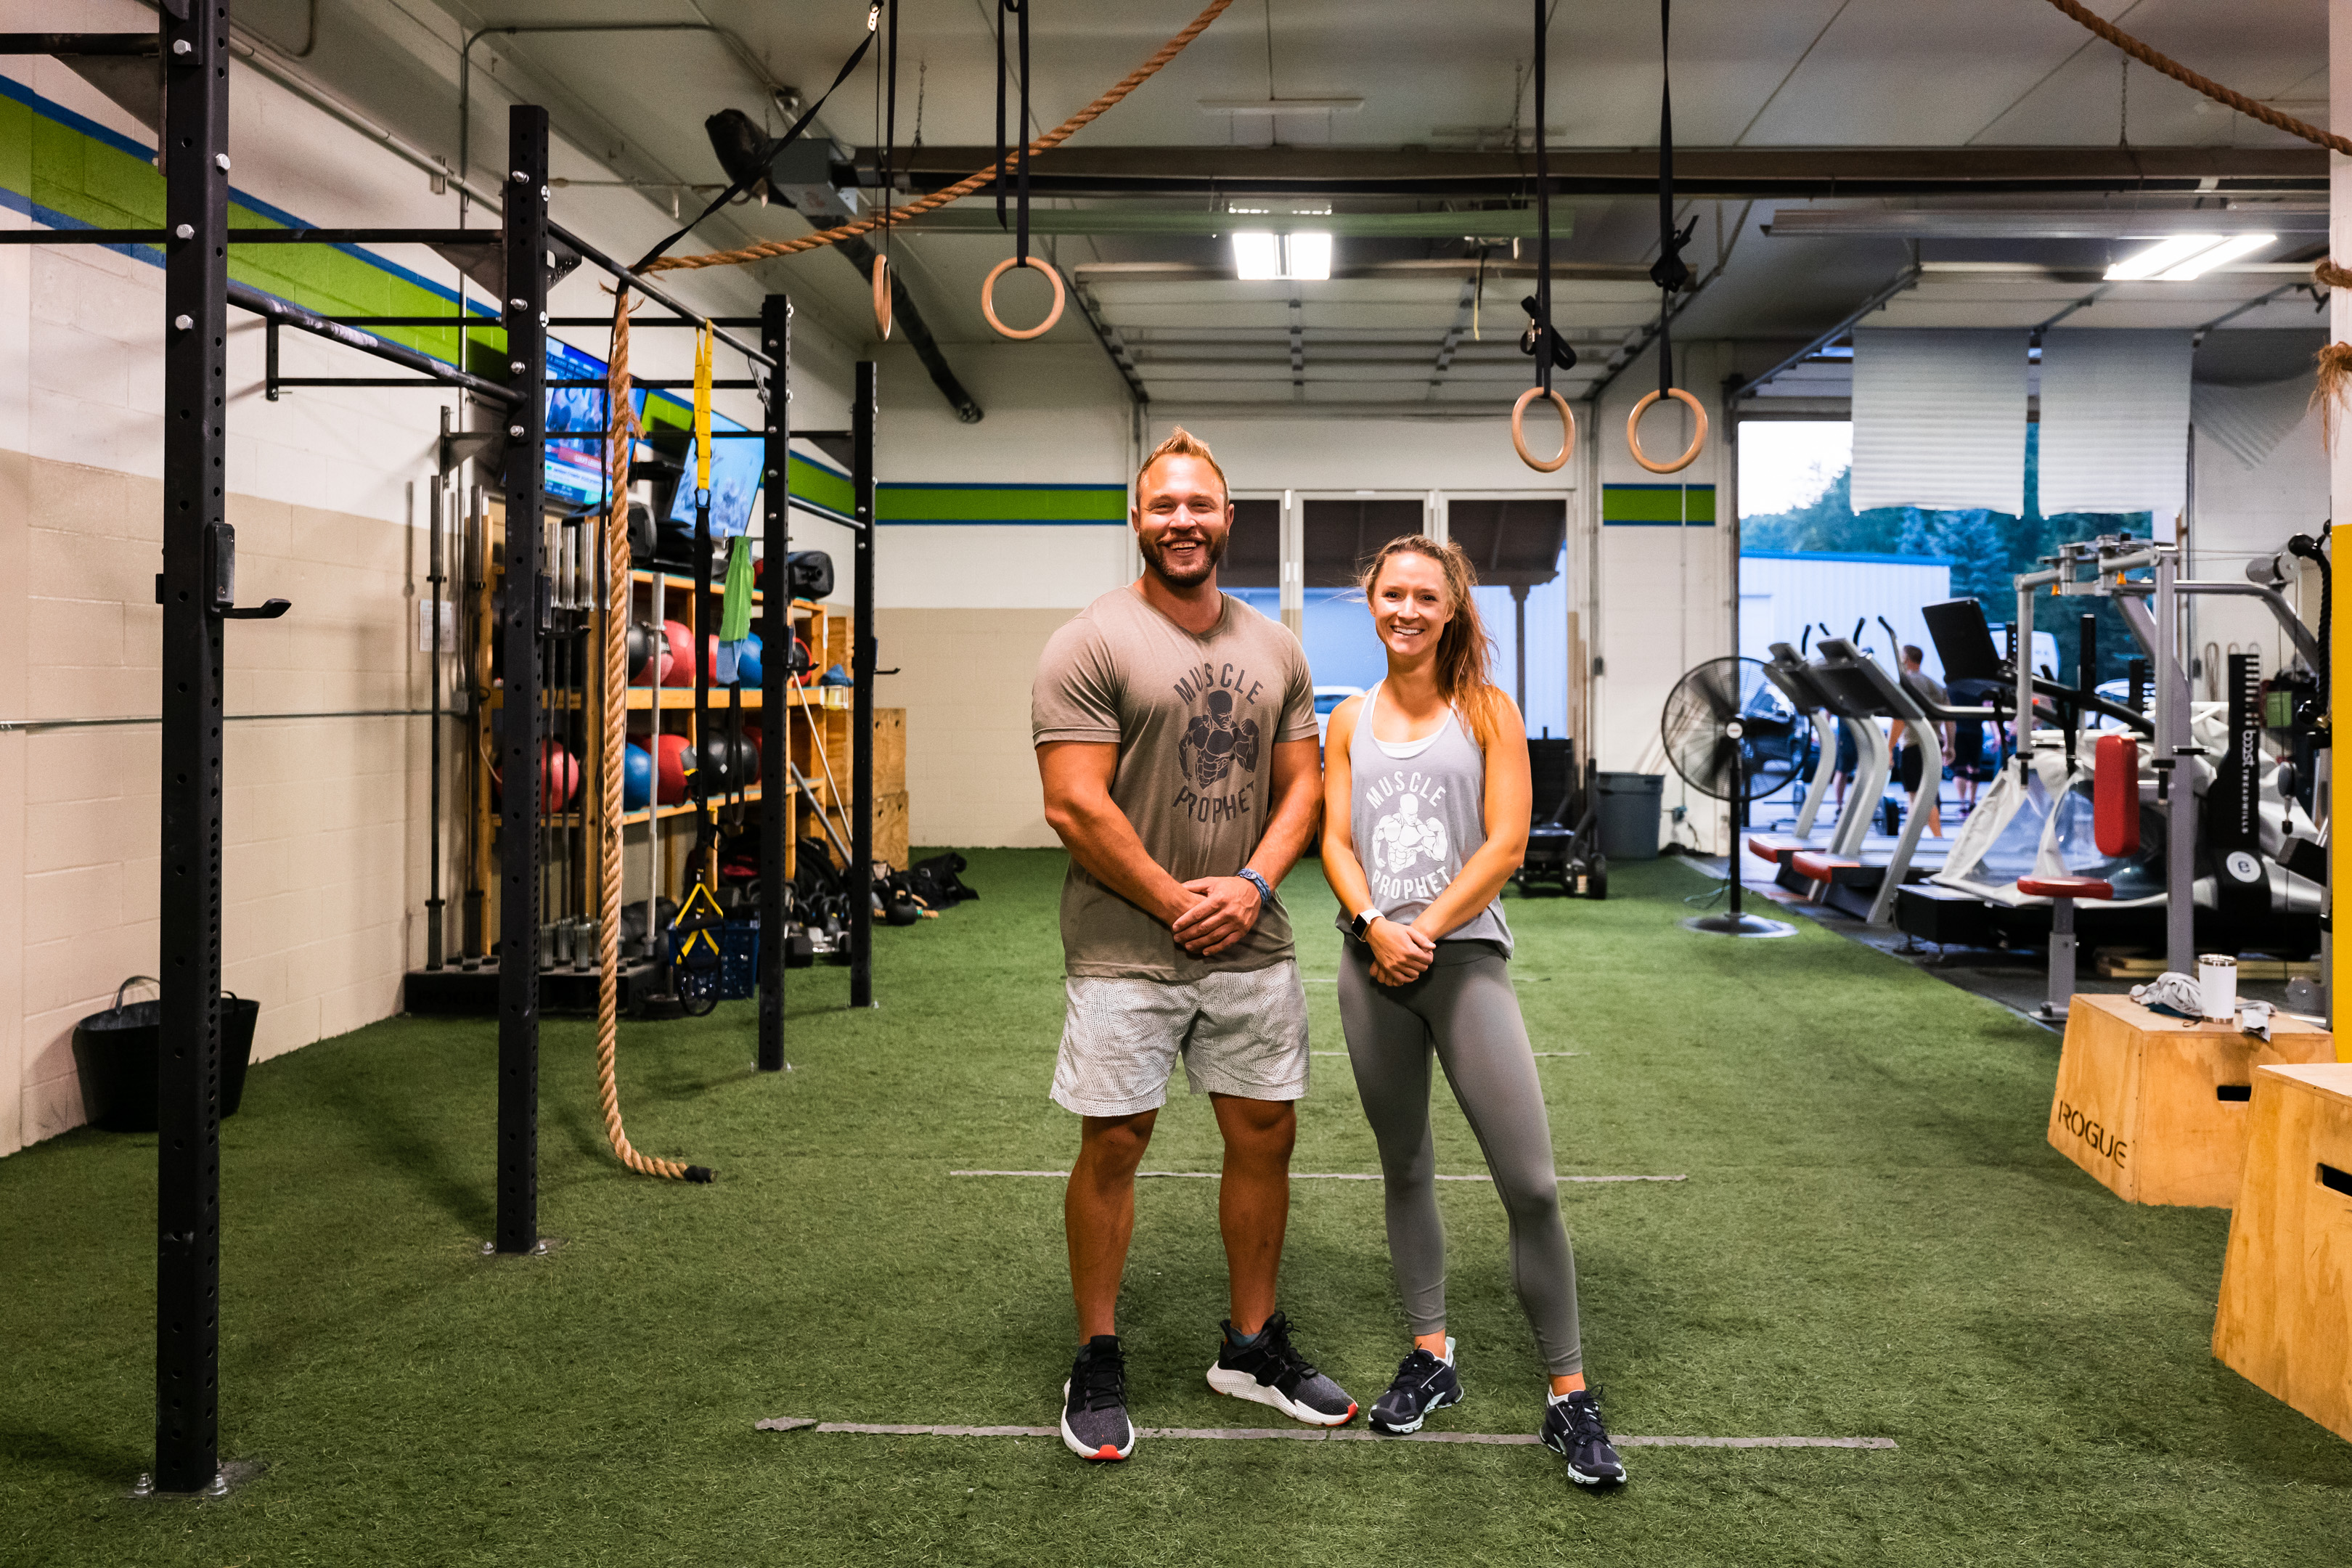 Personal trainers Mark Dominique and Chelsea Clark at Prevail